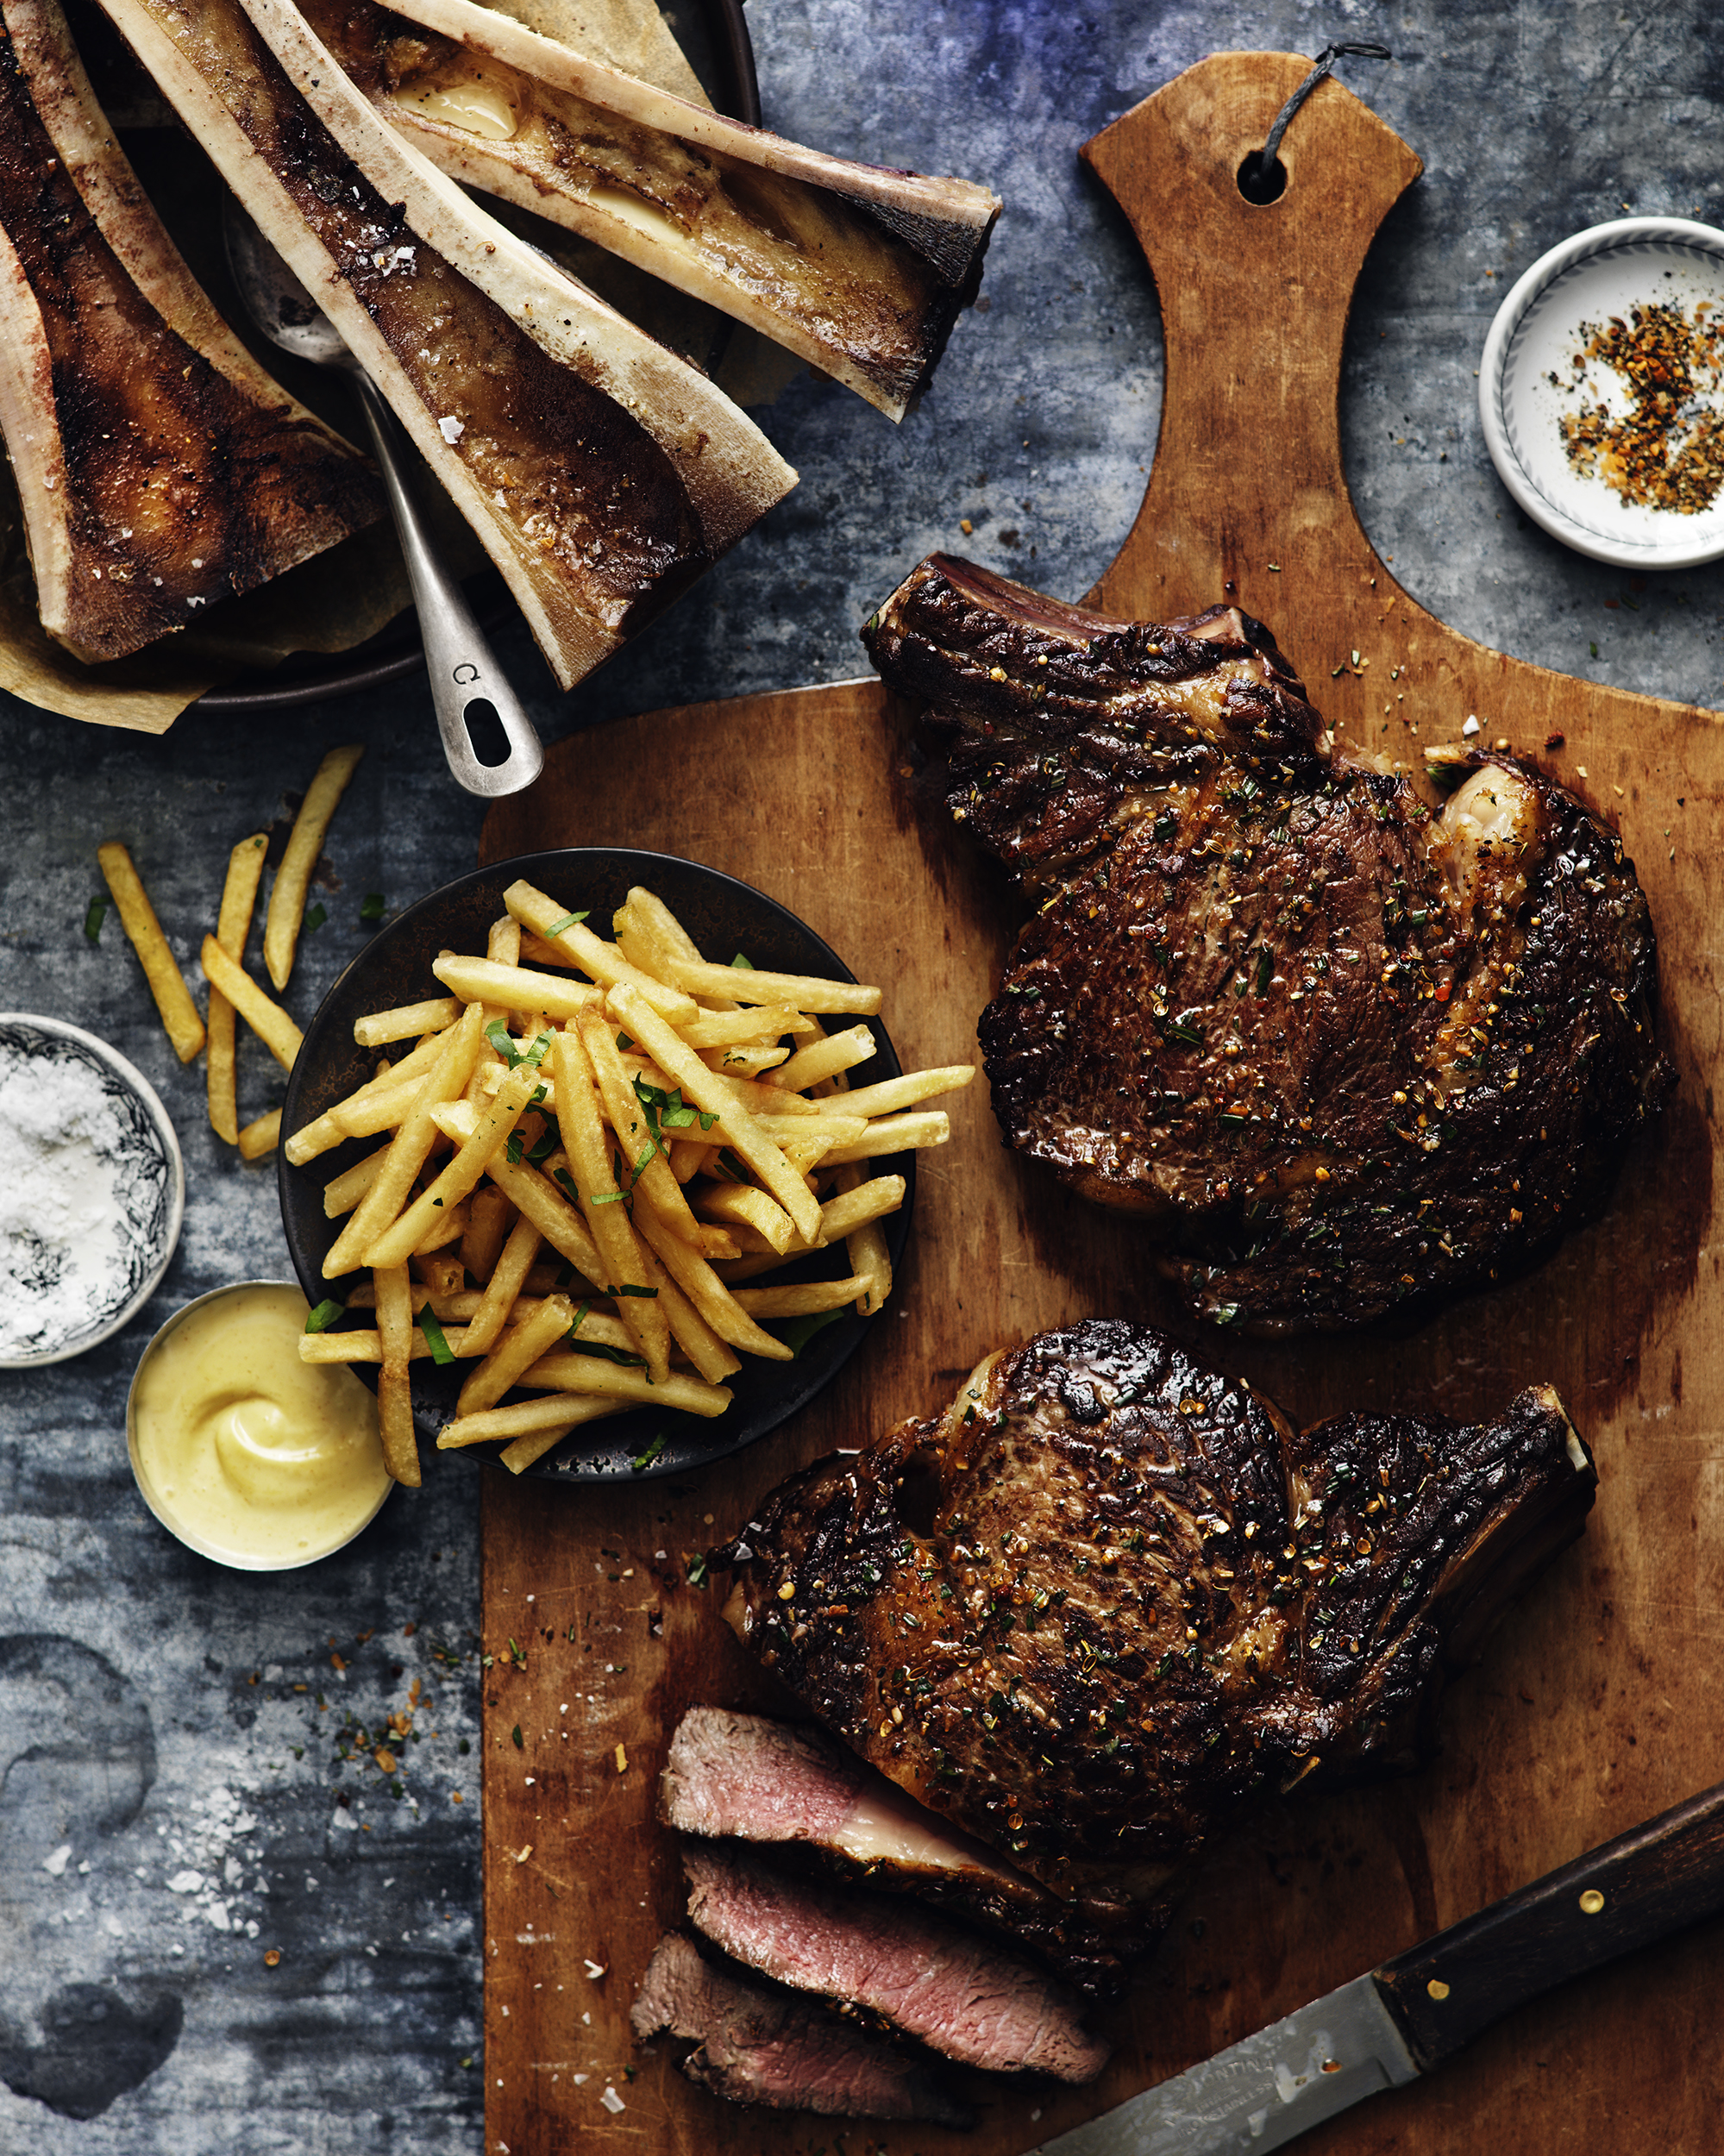 grilled steak and fries food photographer toronto jim norton